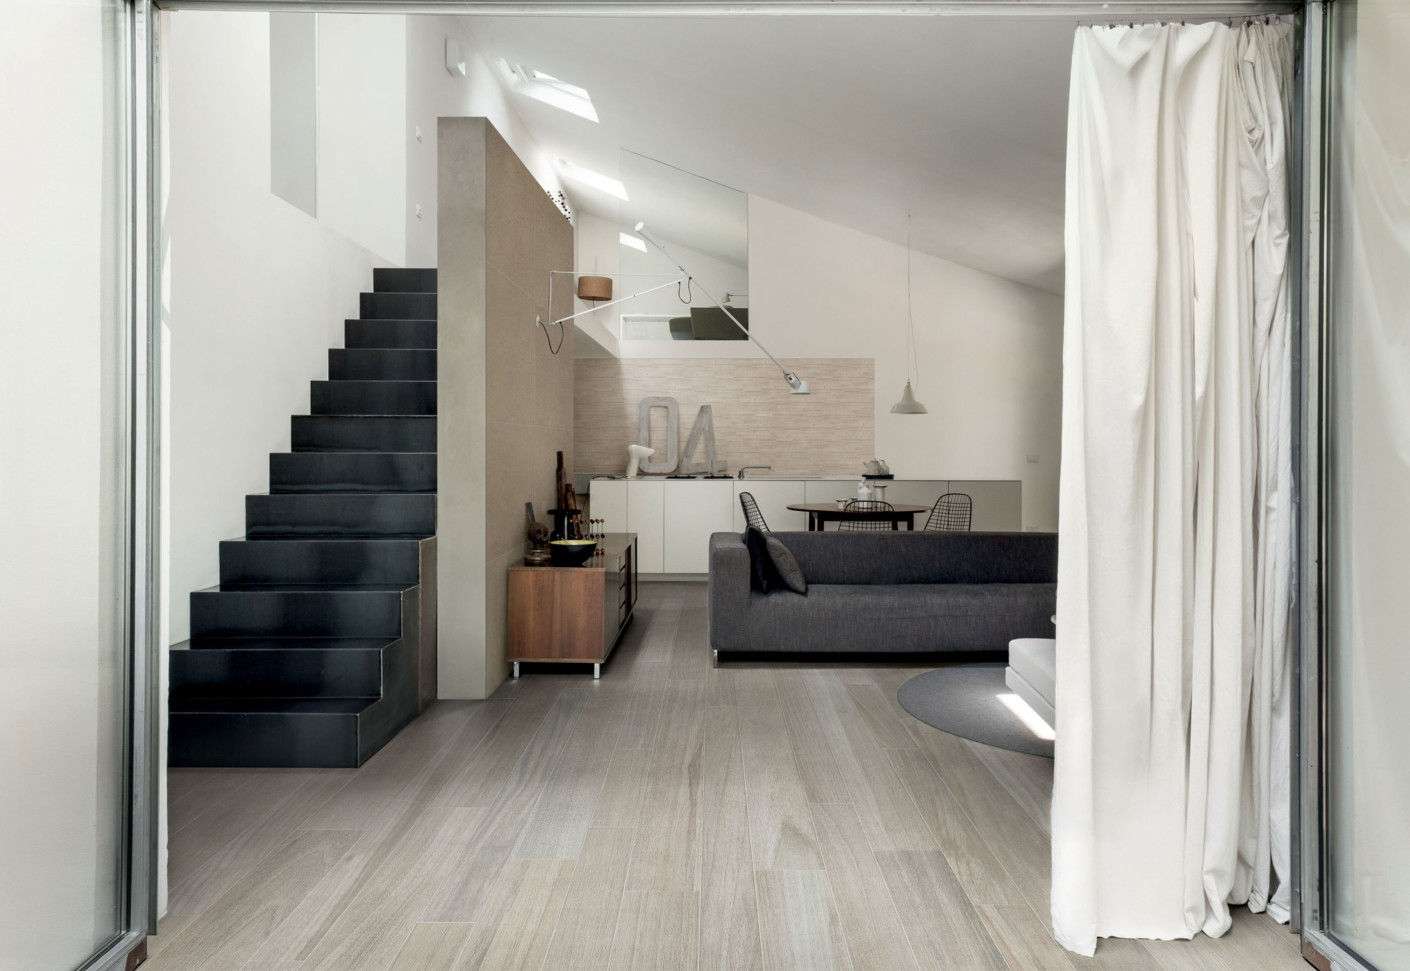 Wooden tile grey by casa dolce casa stylepark for Casa dolce